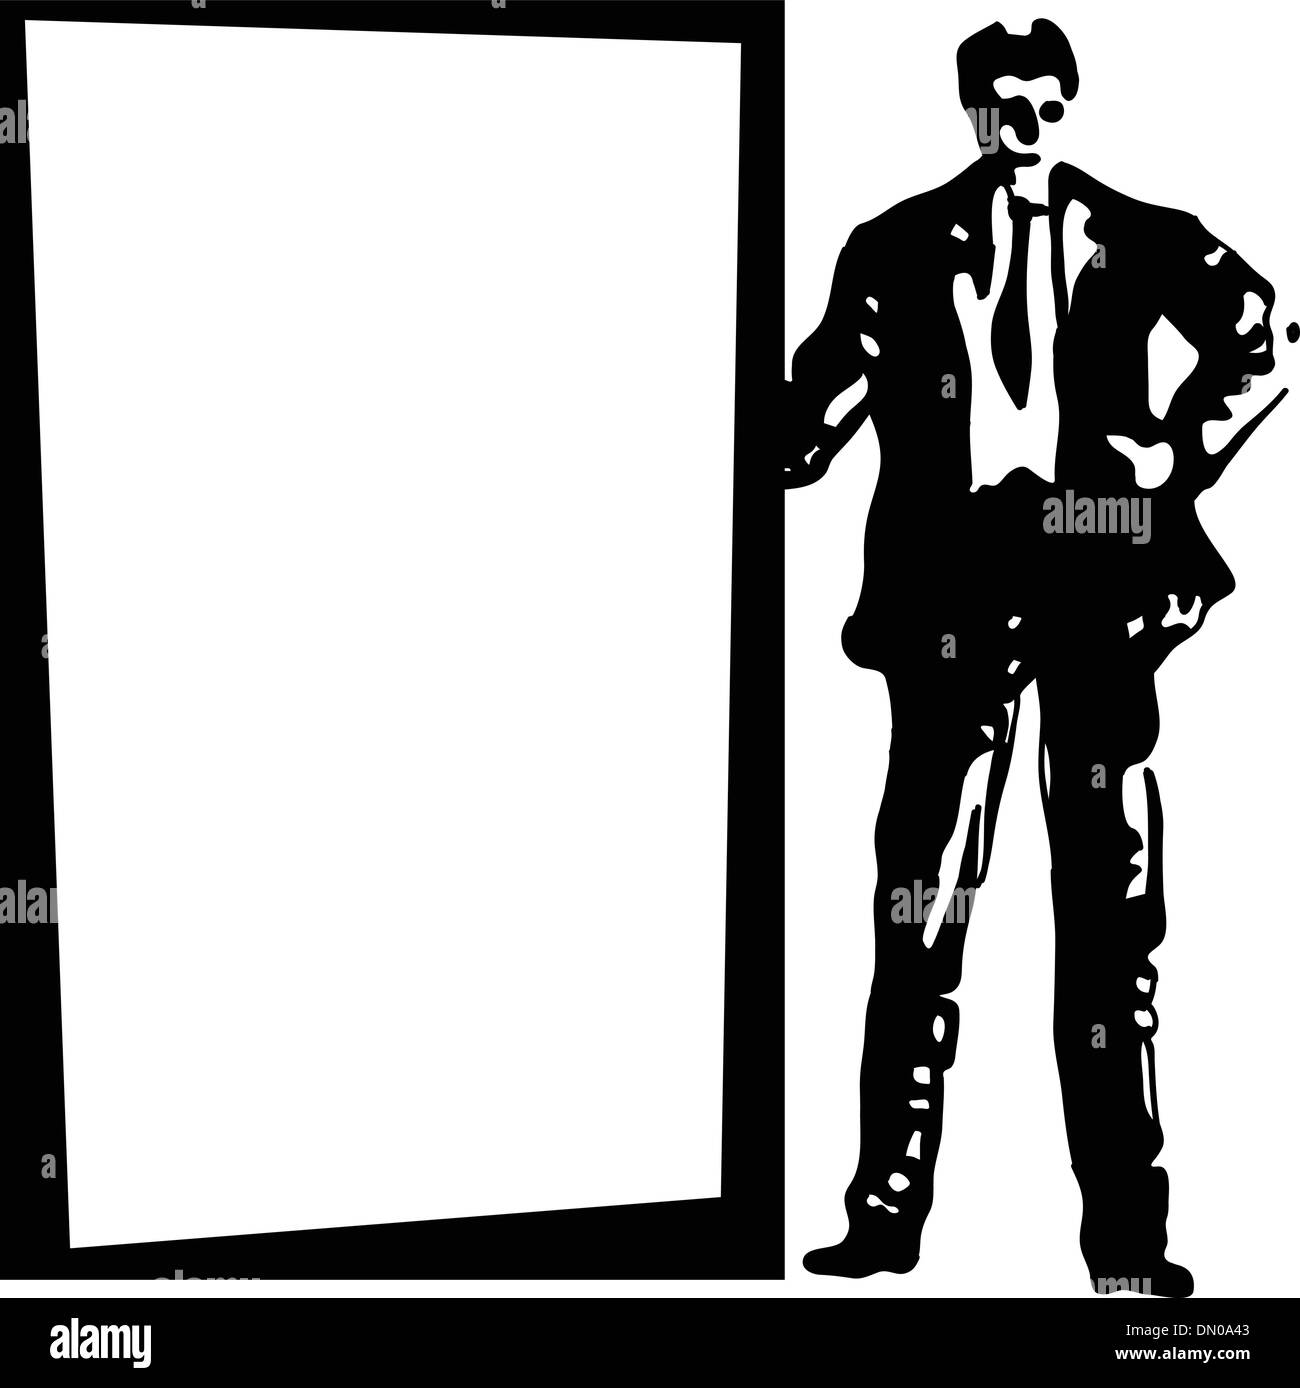 Background to the businessman - Stock Image